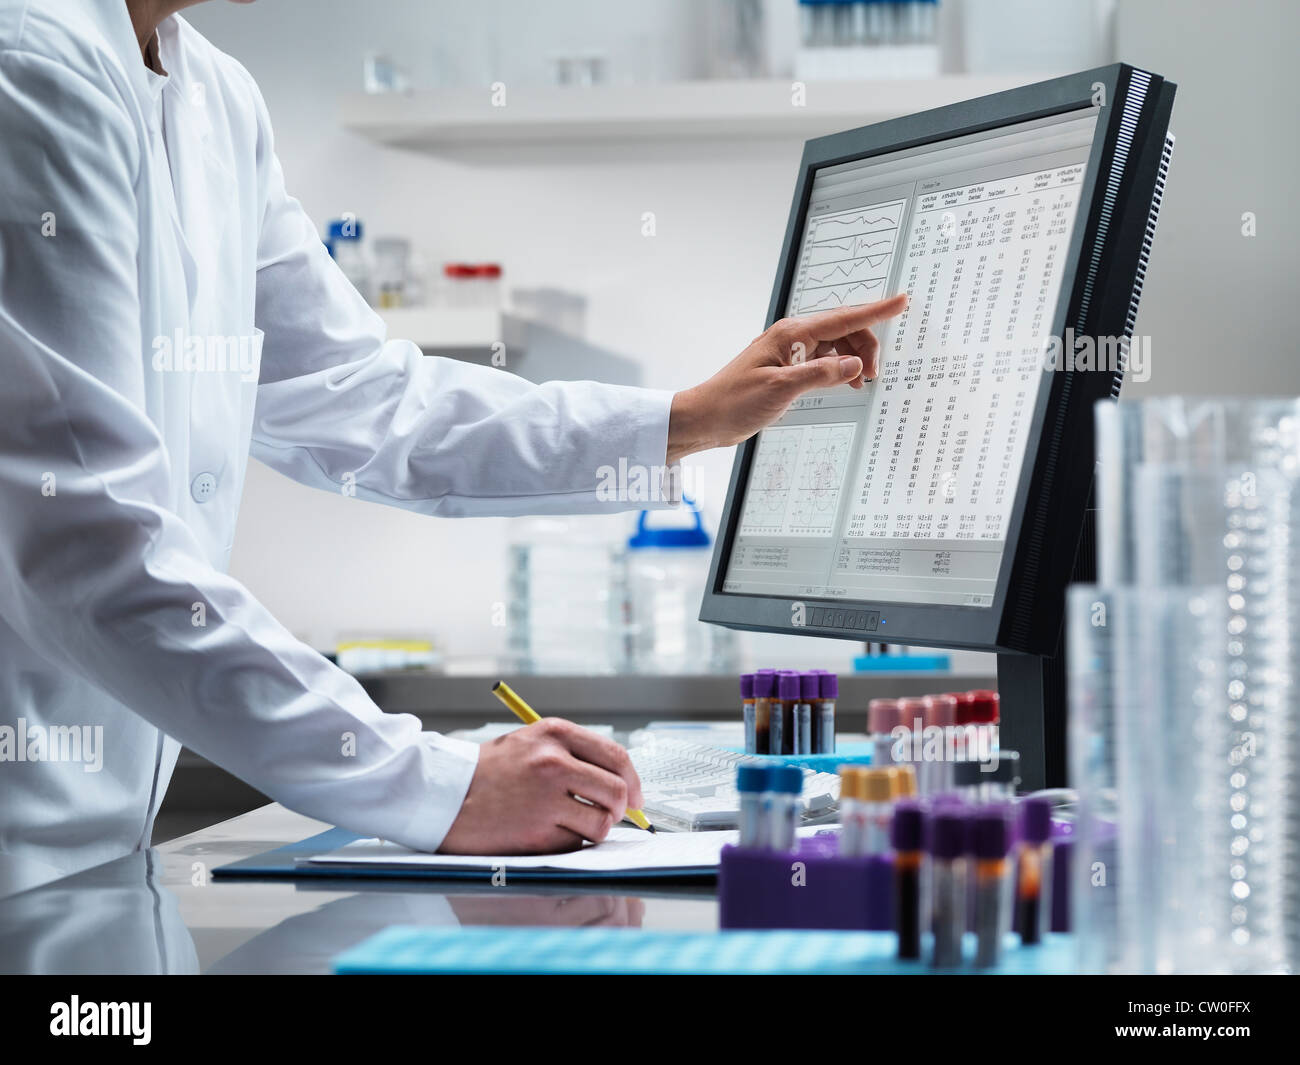 Scientist using computer in lab - Stock Image